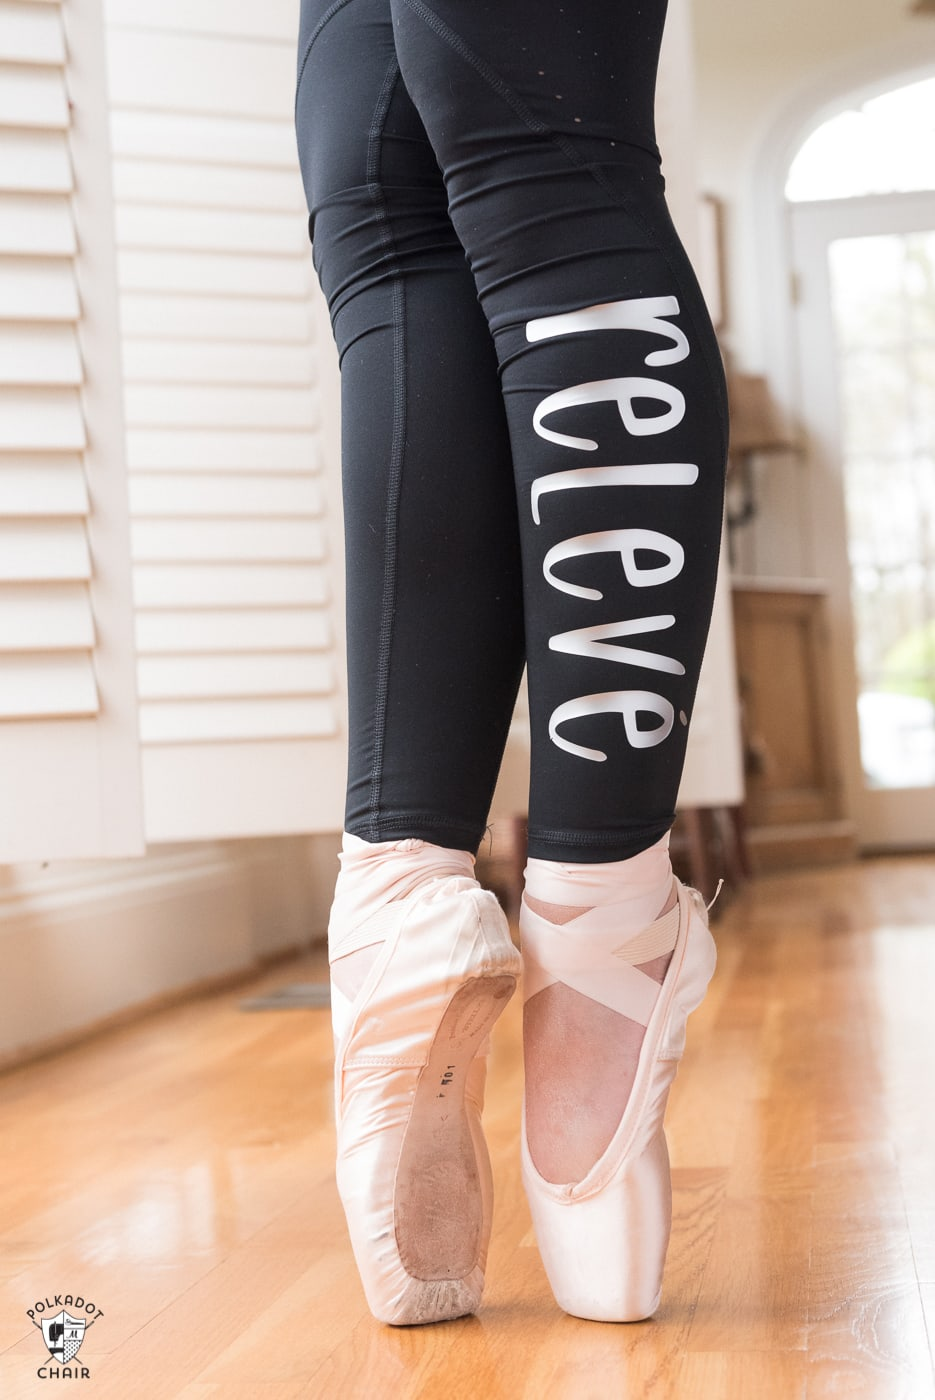 Ballet words ironed onto leggings with Cricut SportFlex